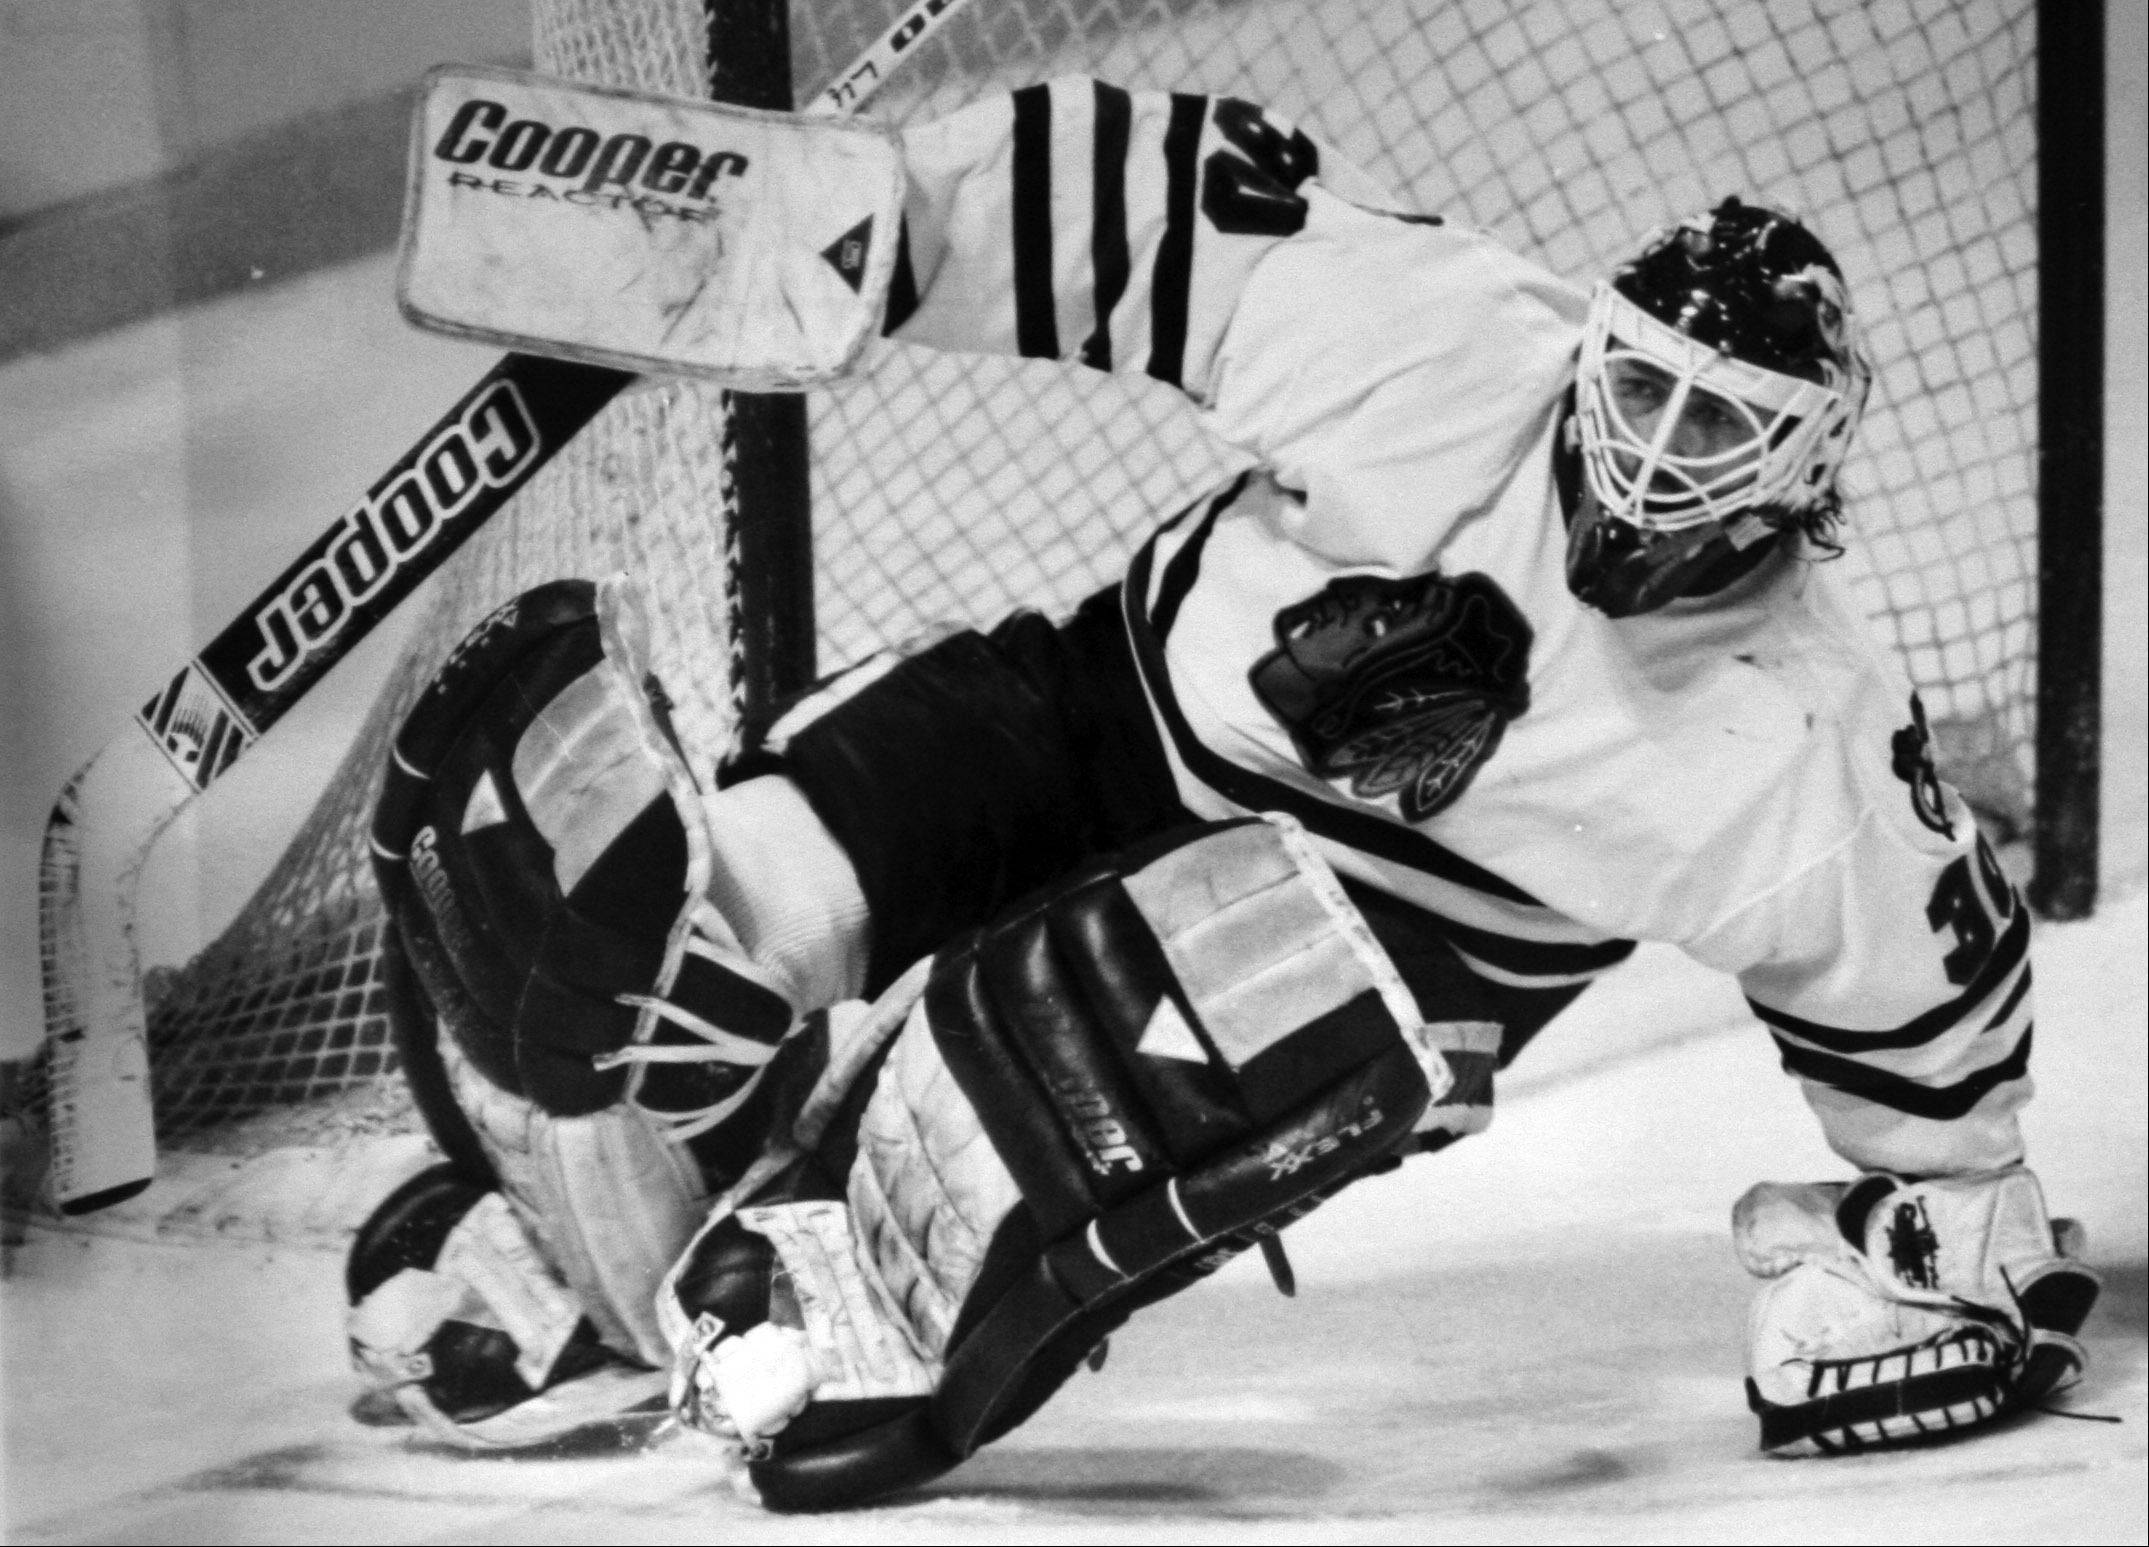 With 484 wins behind him, former Blackhawks goalie Ed Belfour was named to the Hockey Hall of Fame on Tuesday.